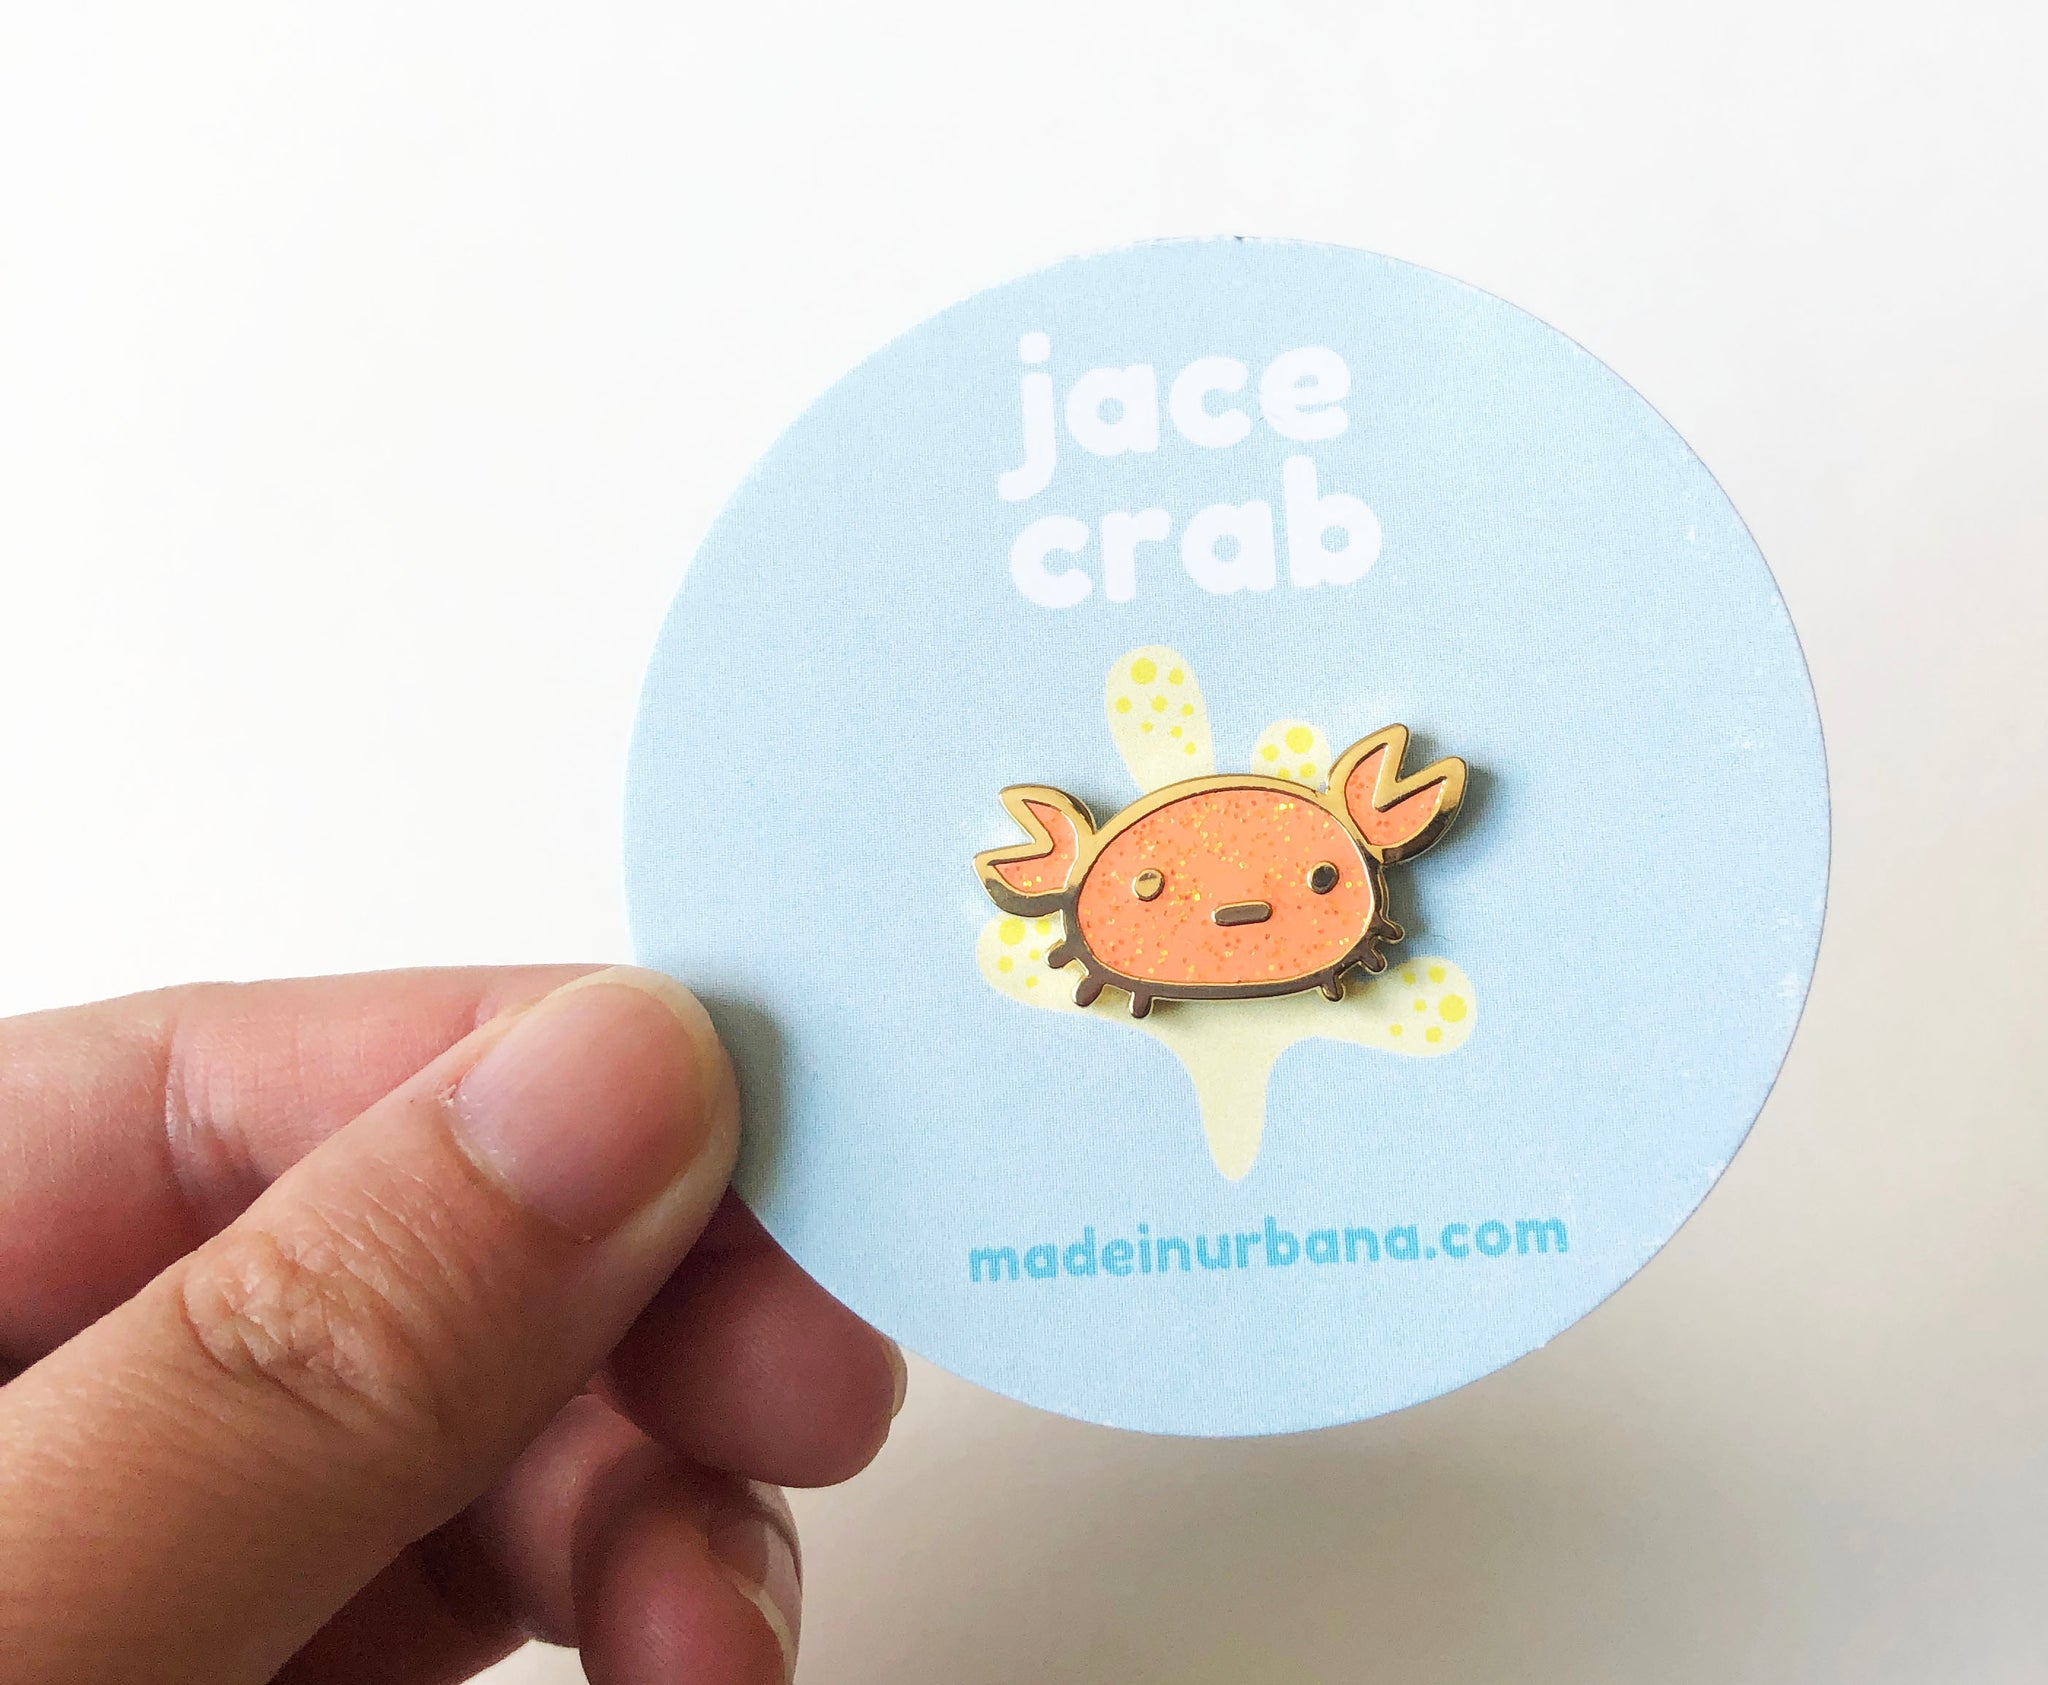 Jace Crab, Orange Glitter Pin with Sunshine Yellow Clutch